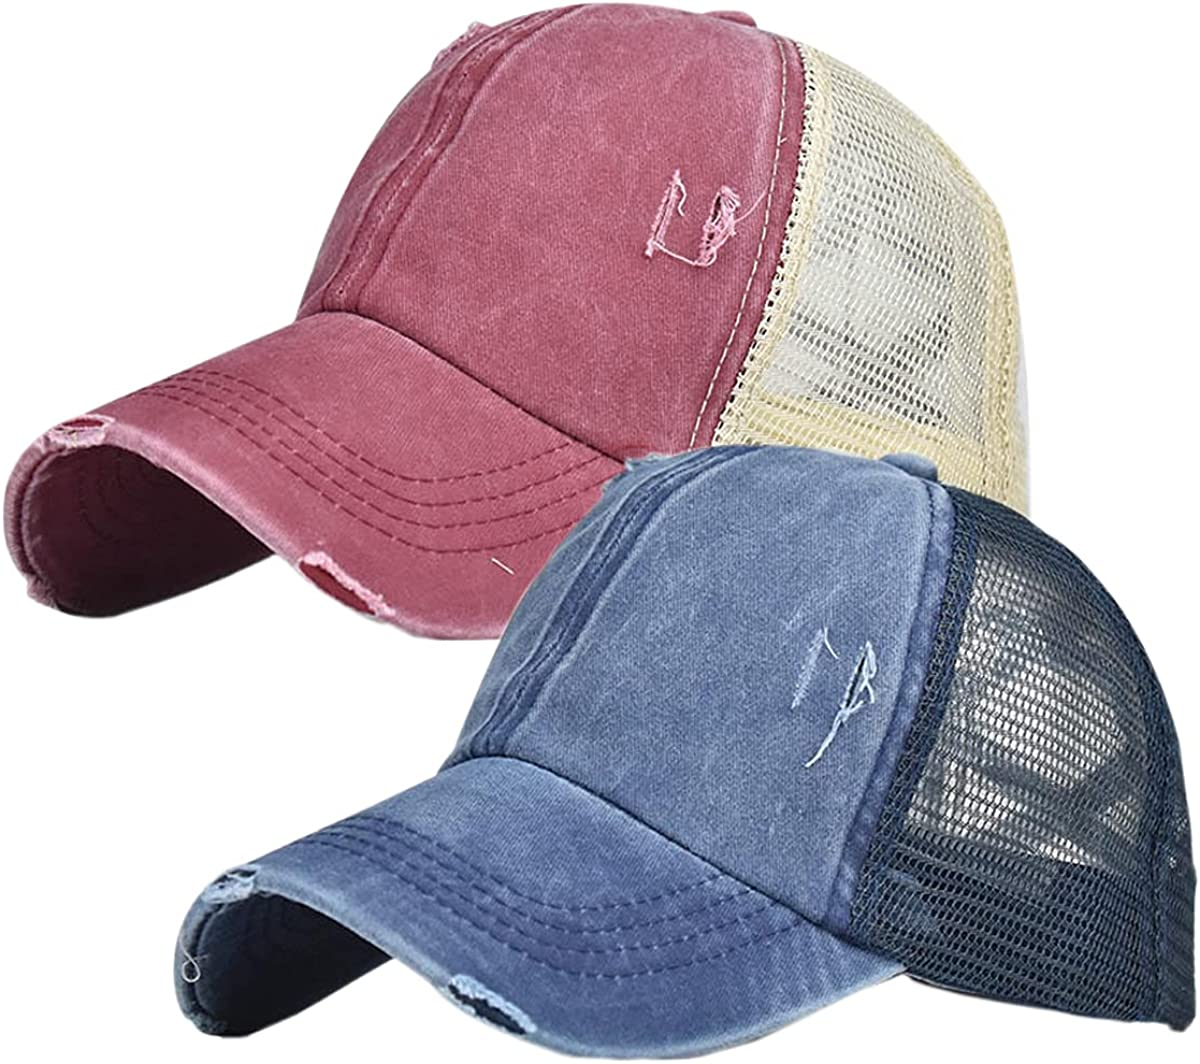 Criss Cross Hat Washed Distressed Ponytail Hats for Women Baseball Cap Messy High Bun